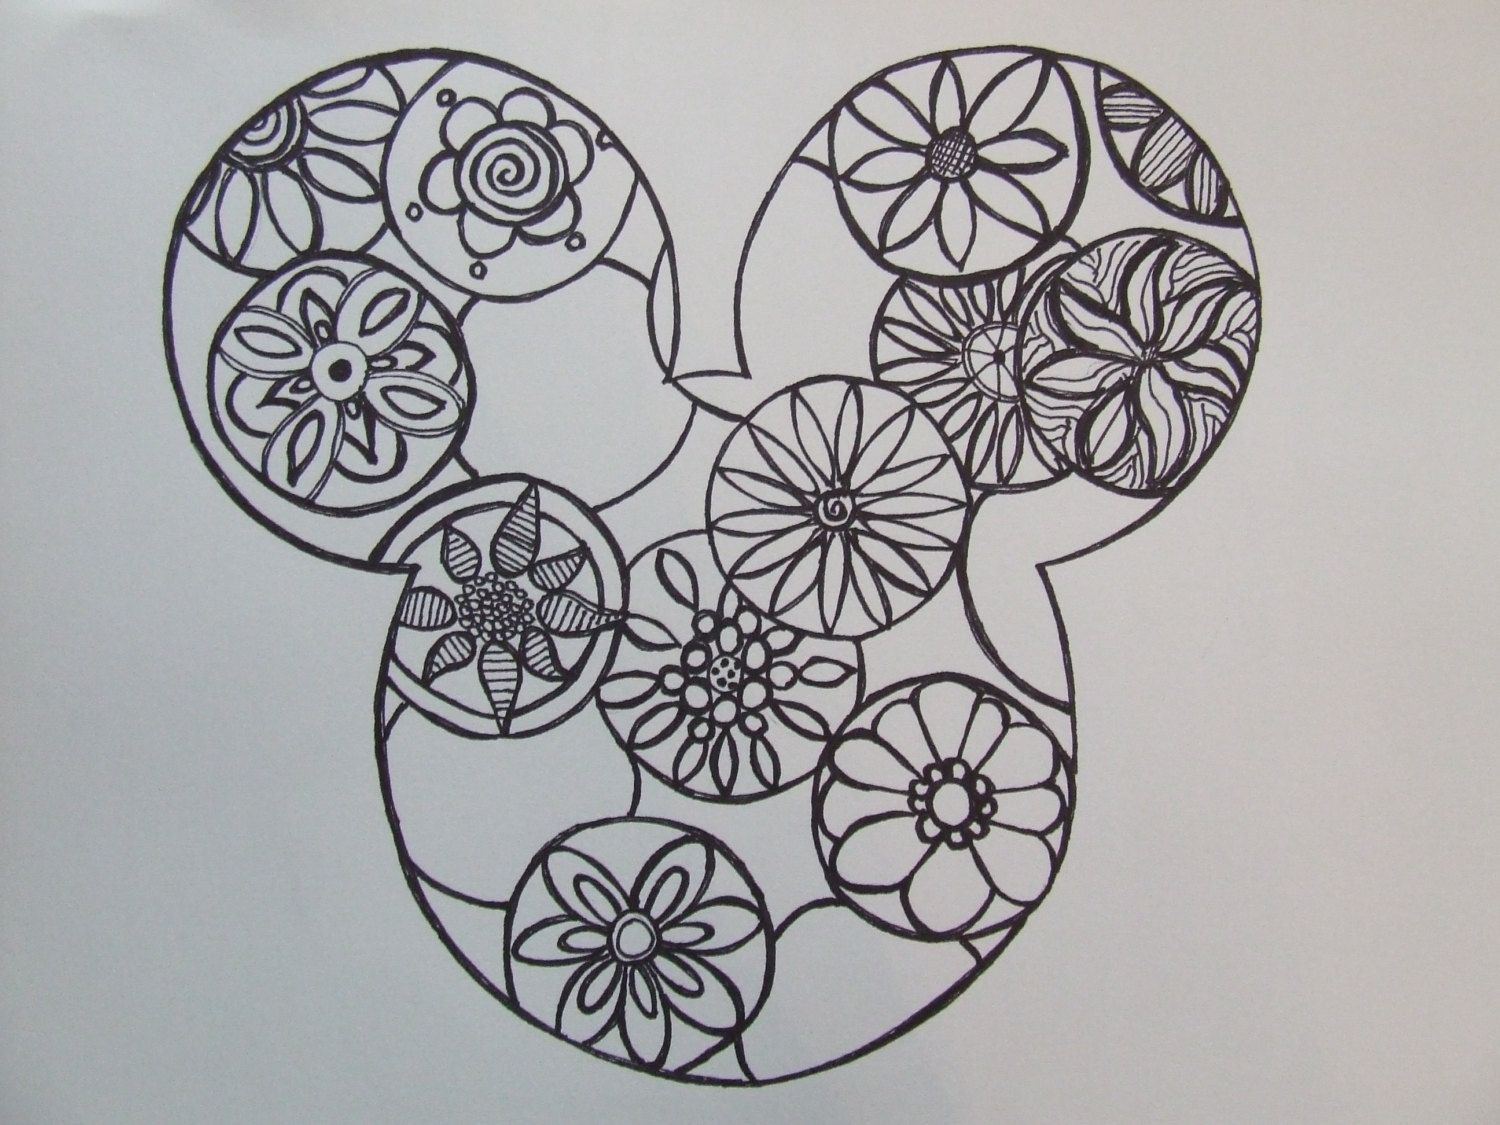 Miki Maus Buscar Con Google: Imagenes De Zentangle Art Facil Buscar Con Google Mickey Mouse